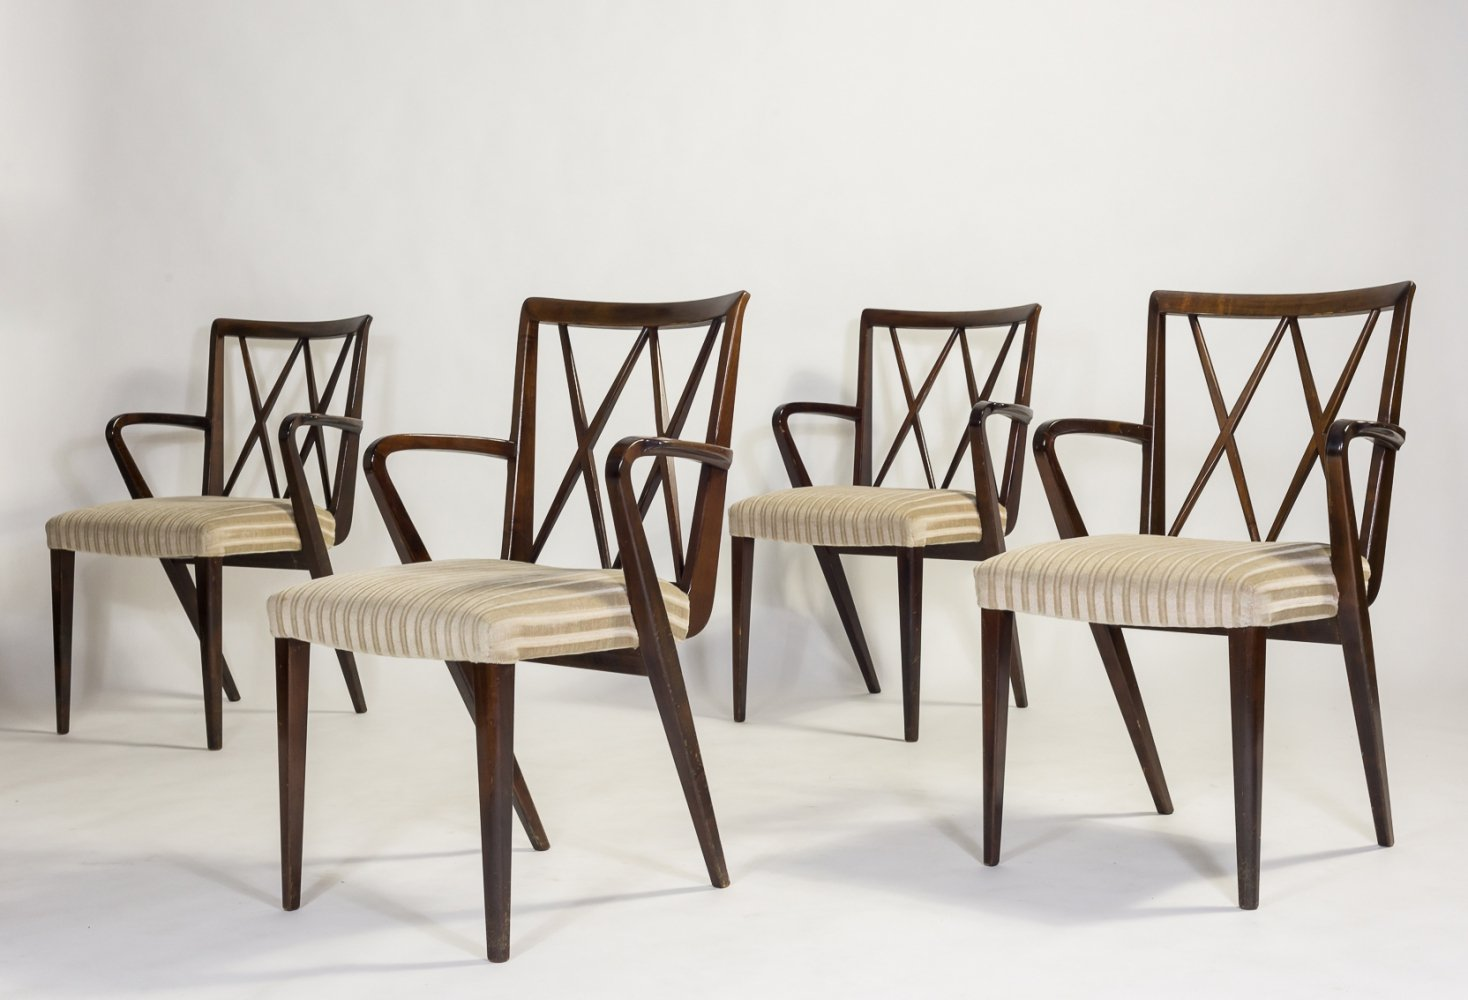 Set of 4 walnut chairs by A.A. Patijn for Zijlstra